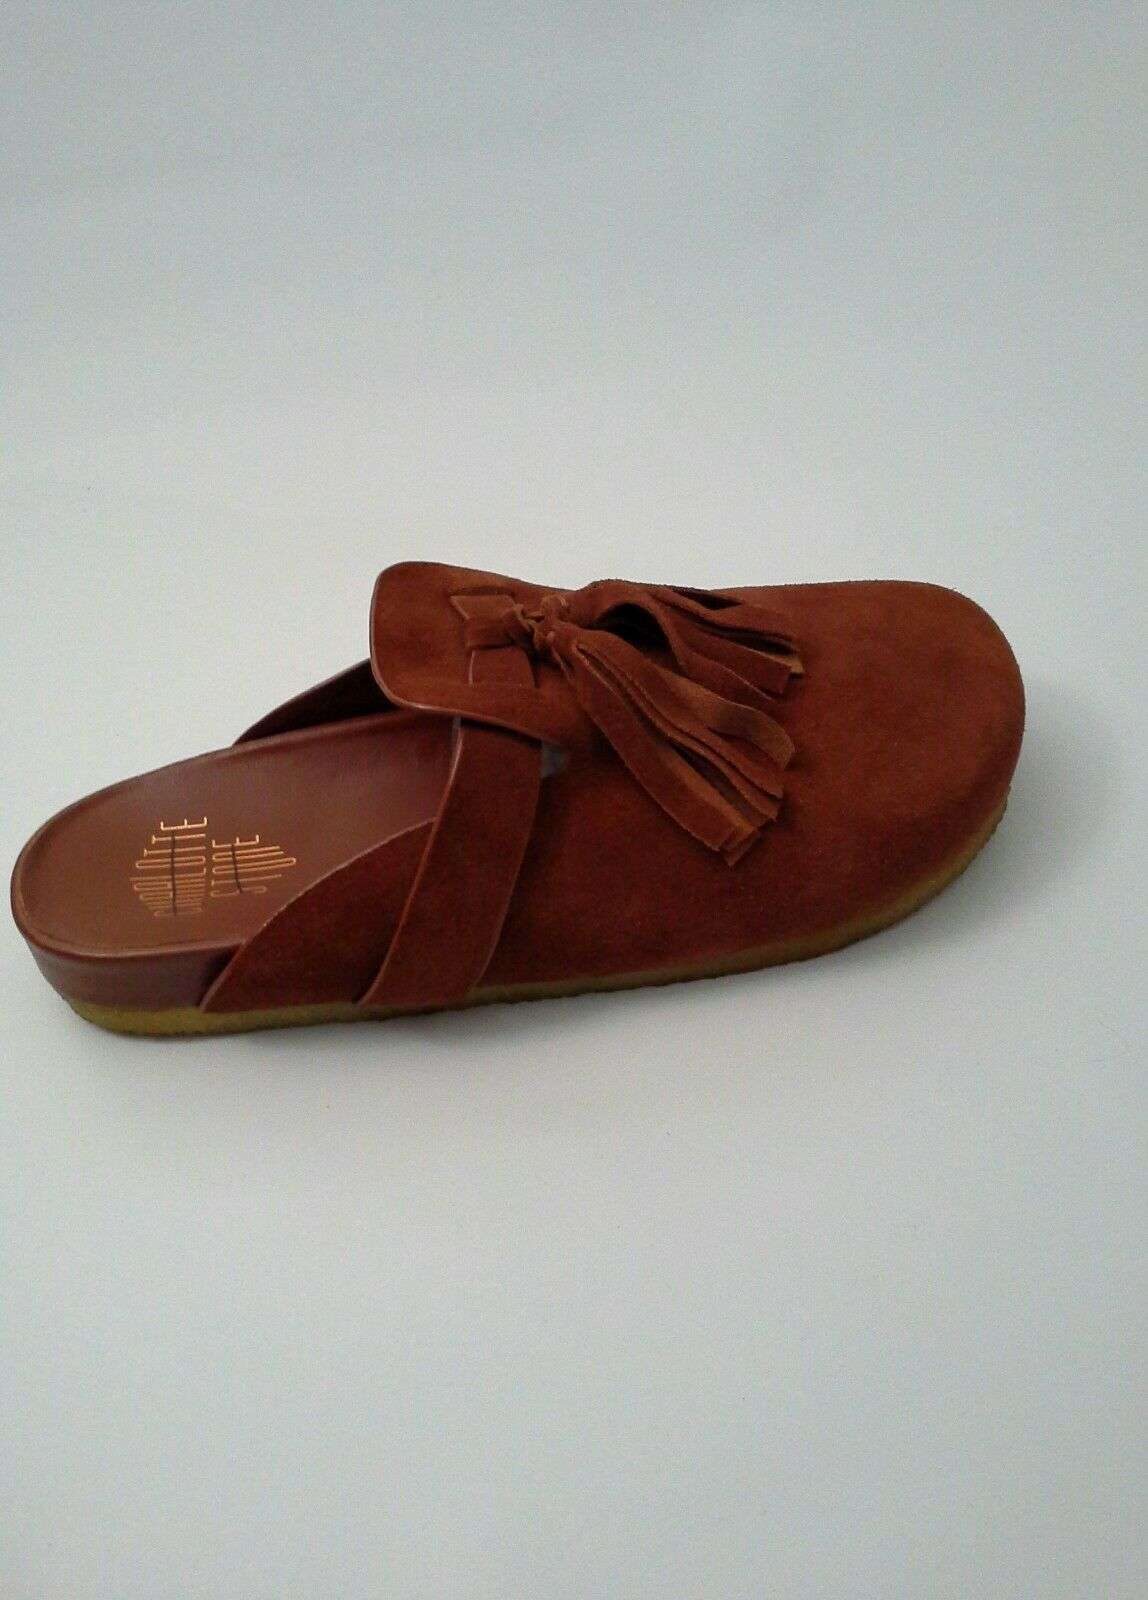 Anthropologie Nellie Mules by Charlotte Stone Taglia 10 10 10 Rust Suede Slip On   265 7192e7